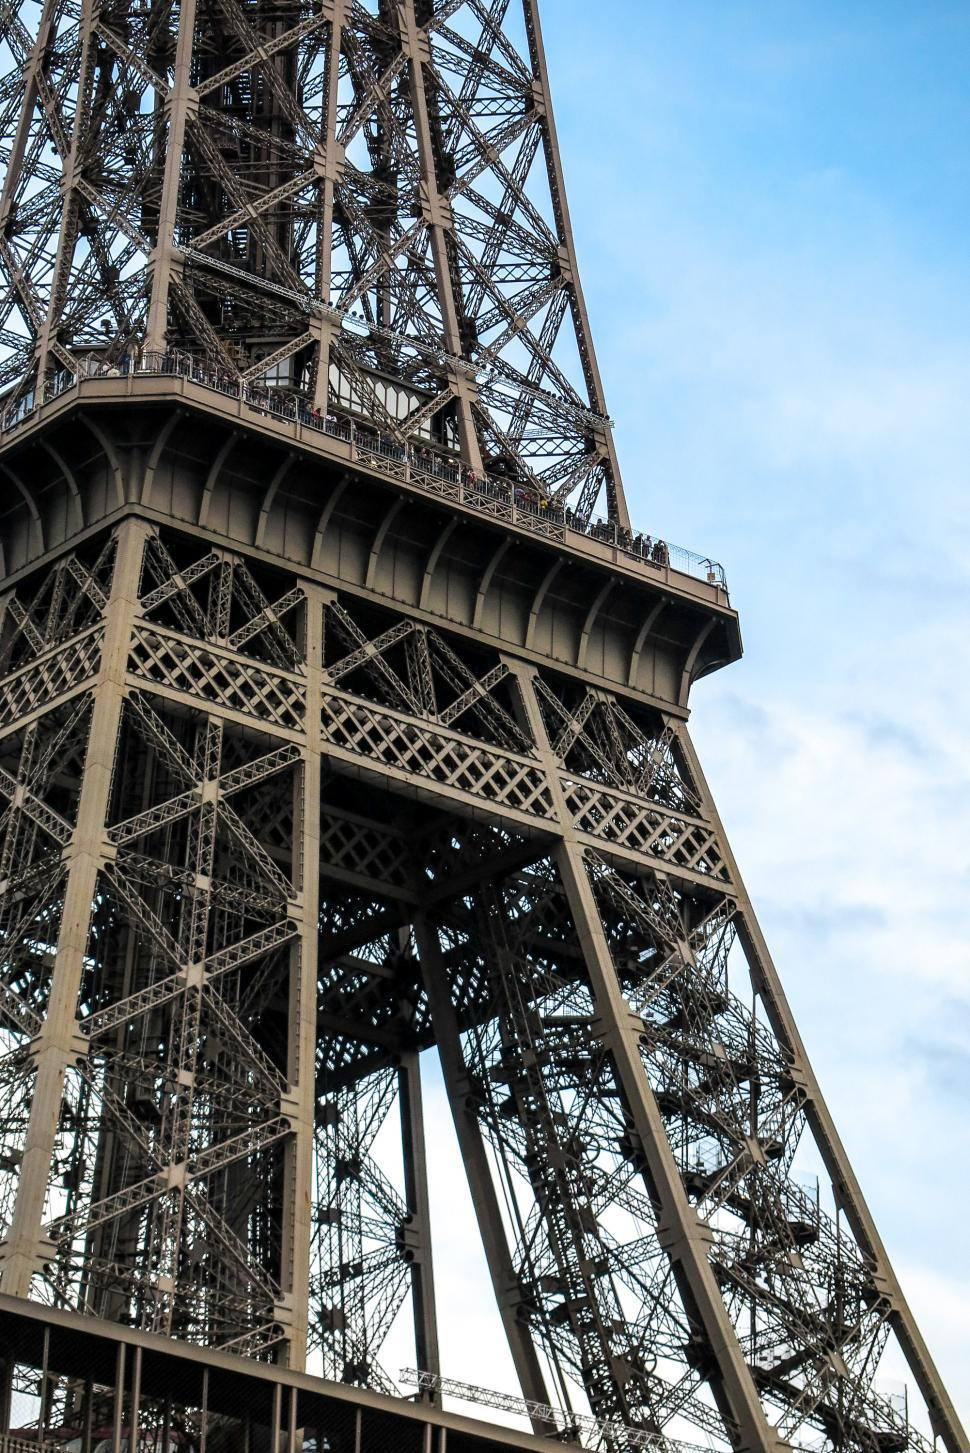 Download Free Stock HD Photo of Eiffel Tower structure Online